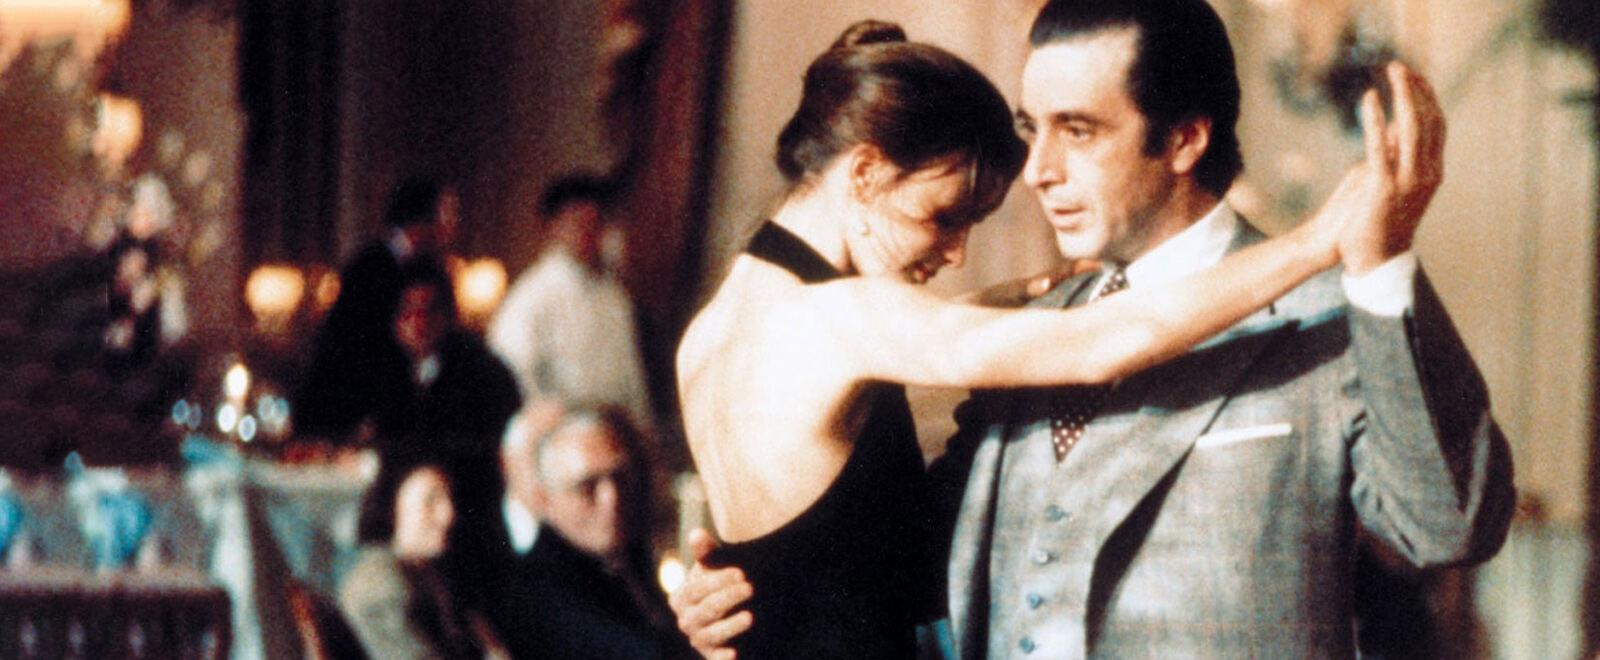 Scent of a woman-profumo di donna